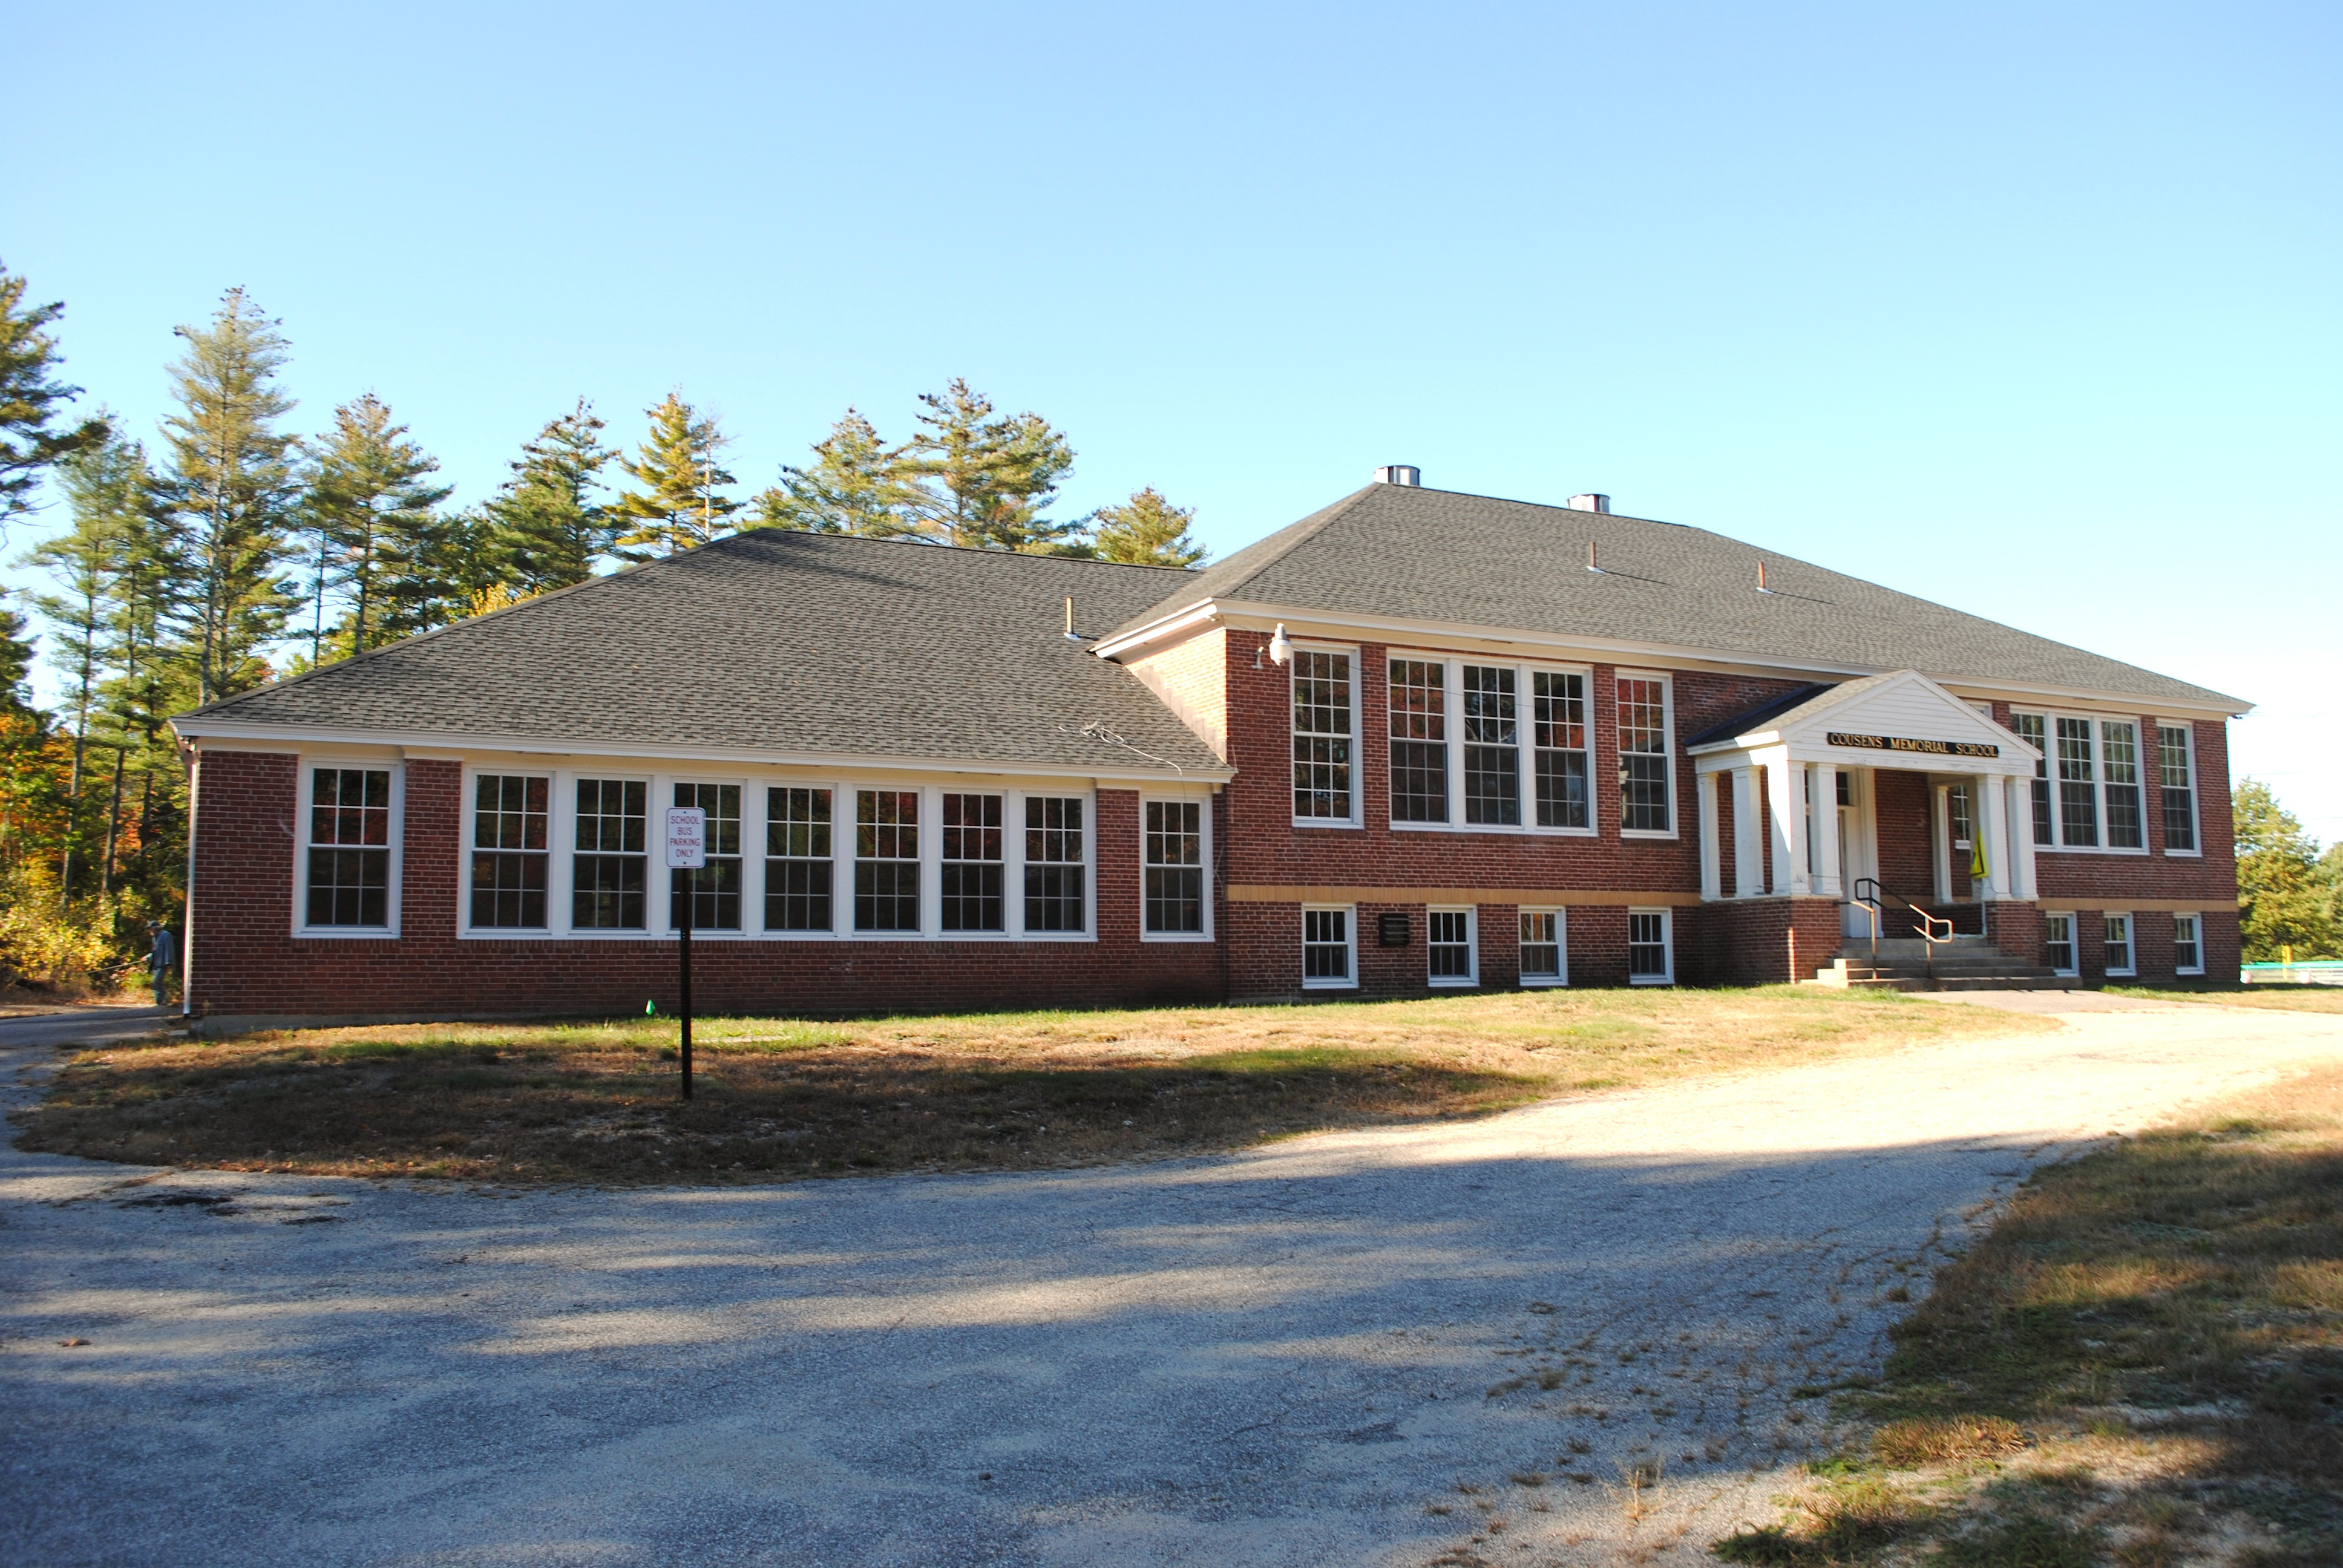 The former Cousens School in Lyman, as seen Tuesday afternoon.LIZ GOTTHELF/Journal Tribune